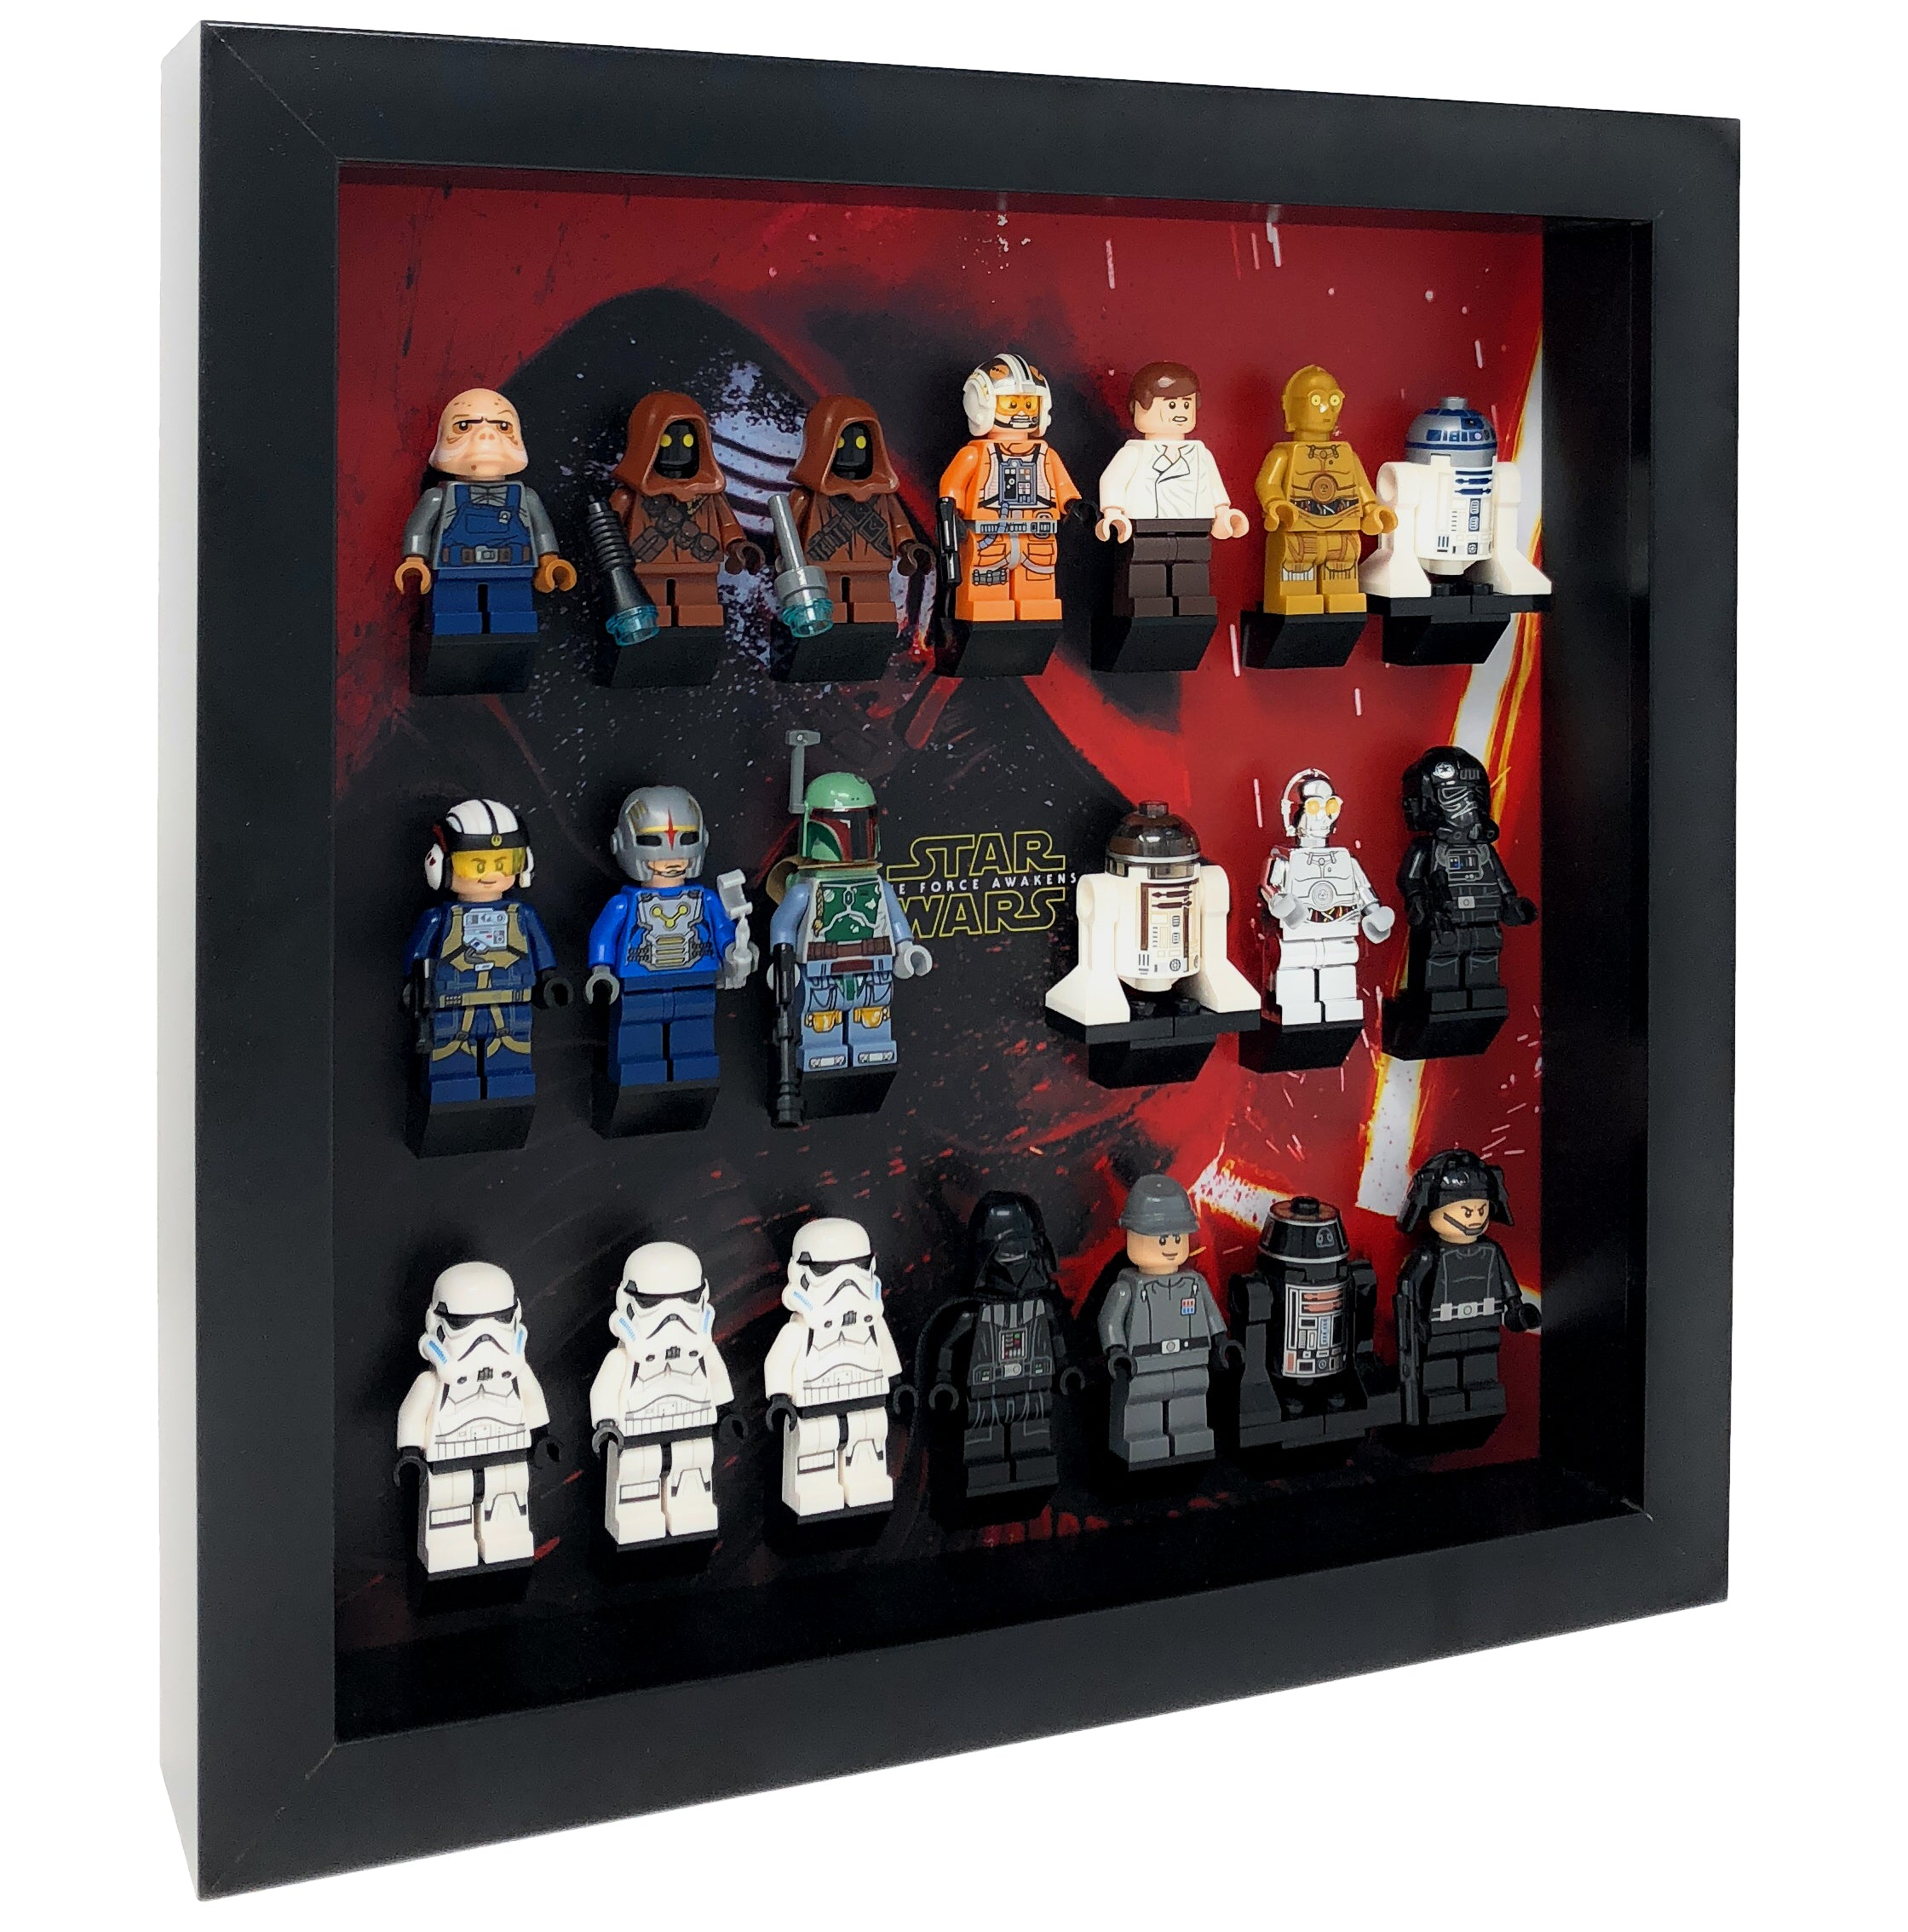 Lego Batman Minifigure Display Case keep your minifig safe and dust free!